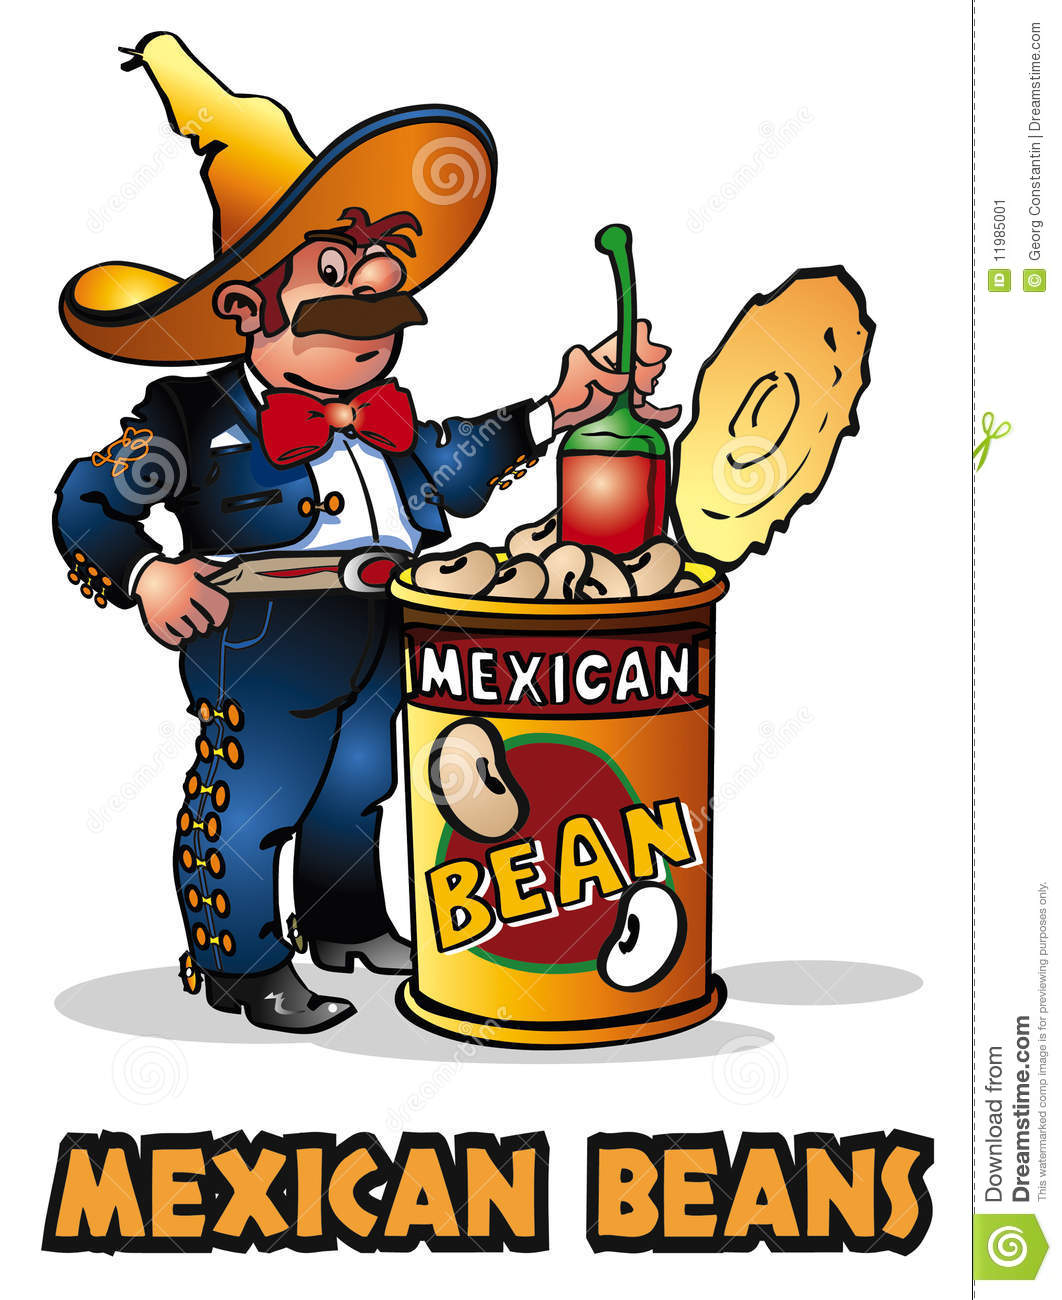 Mexican Beans stock vector. Illustration of chili, sombrero.